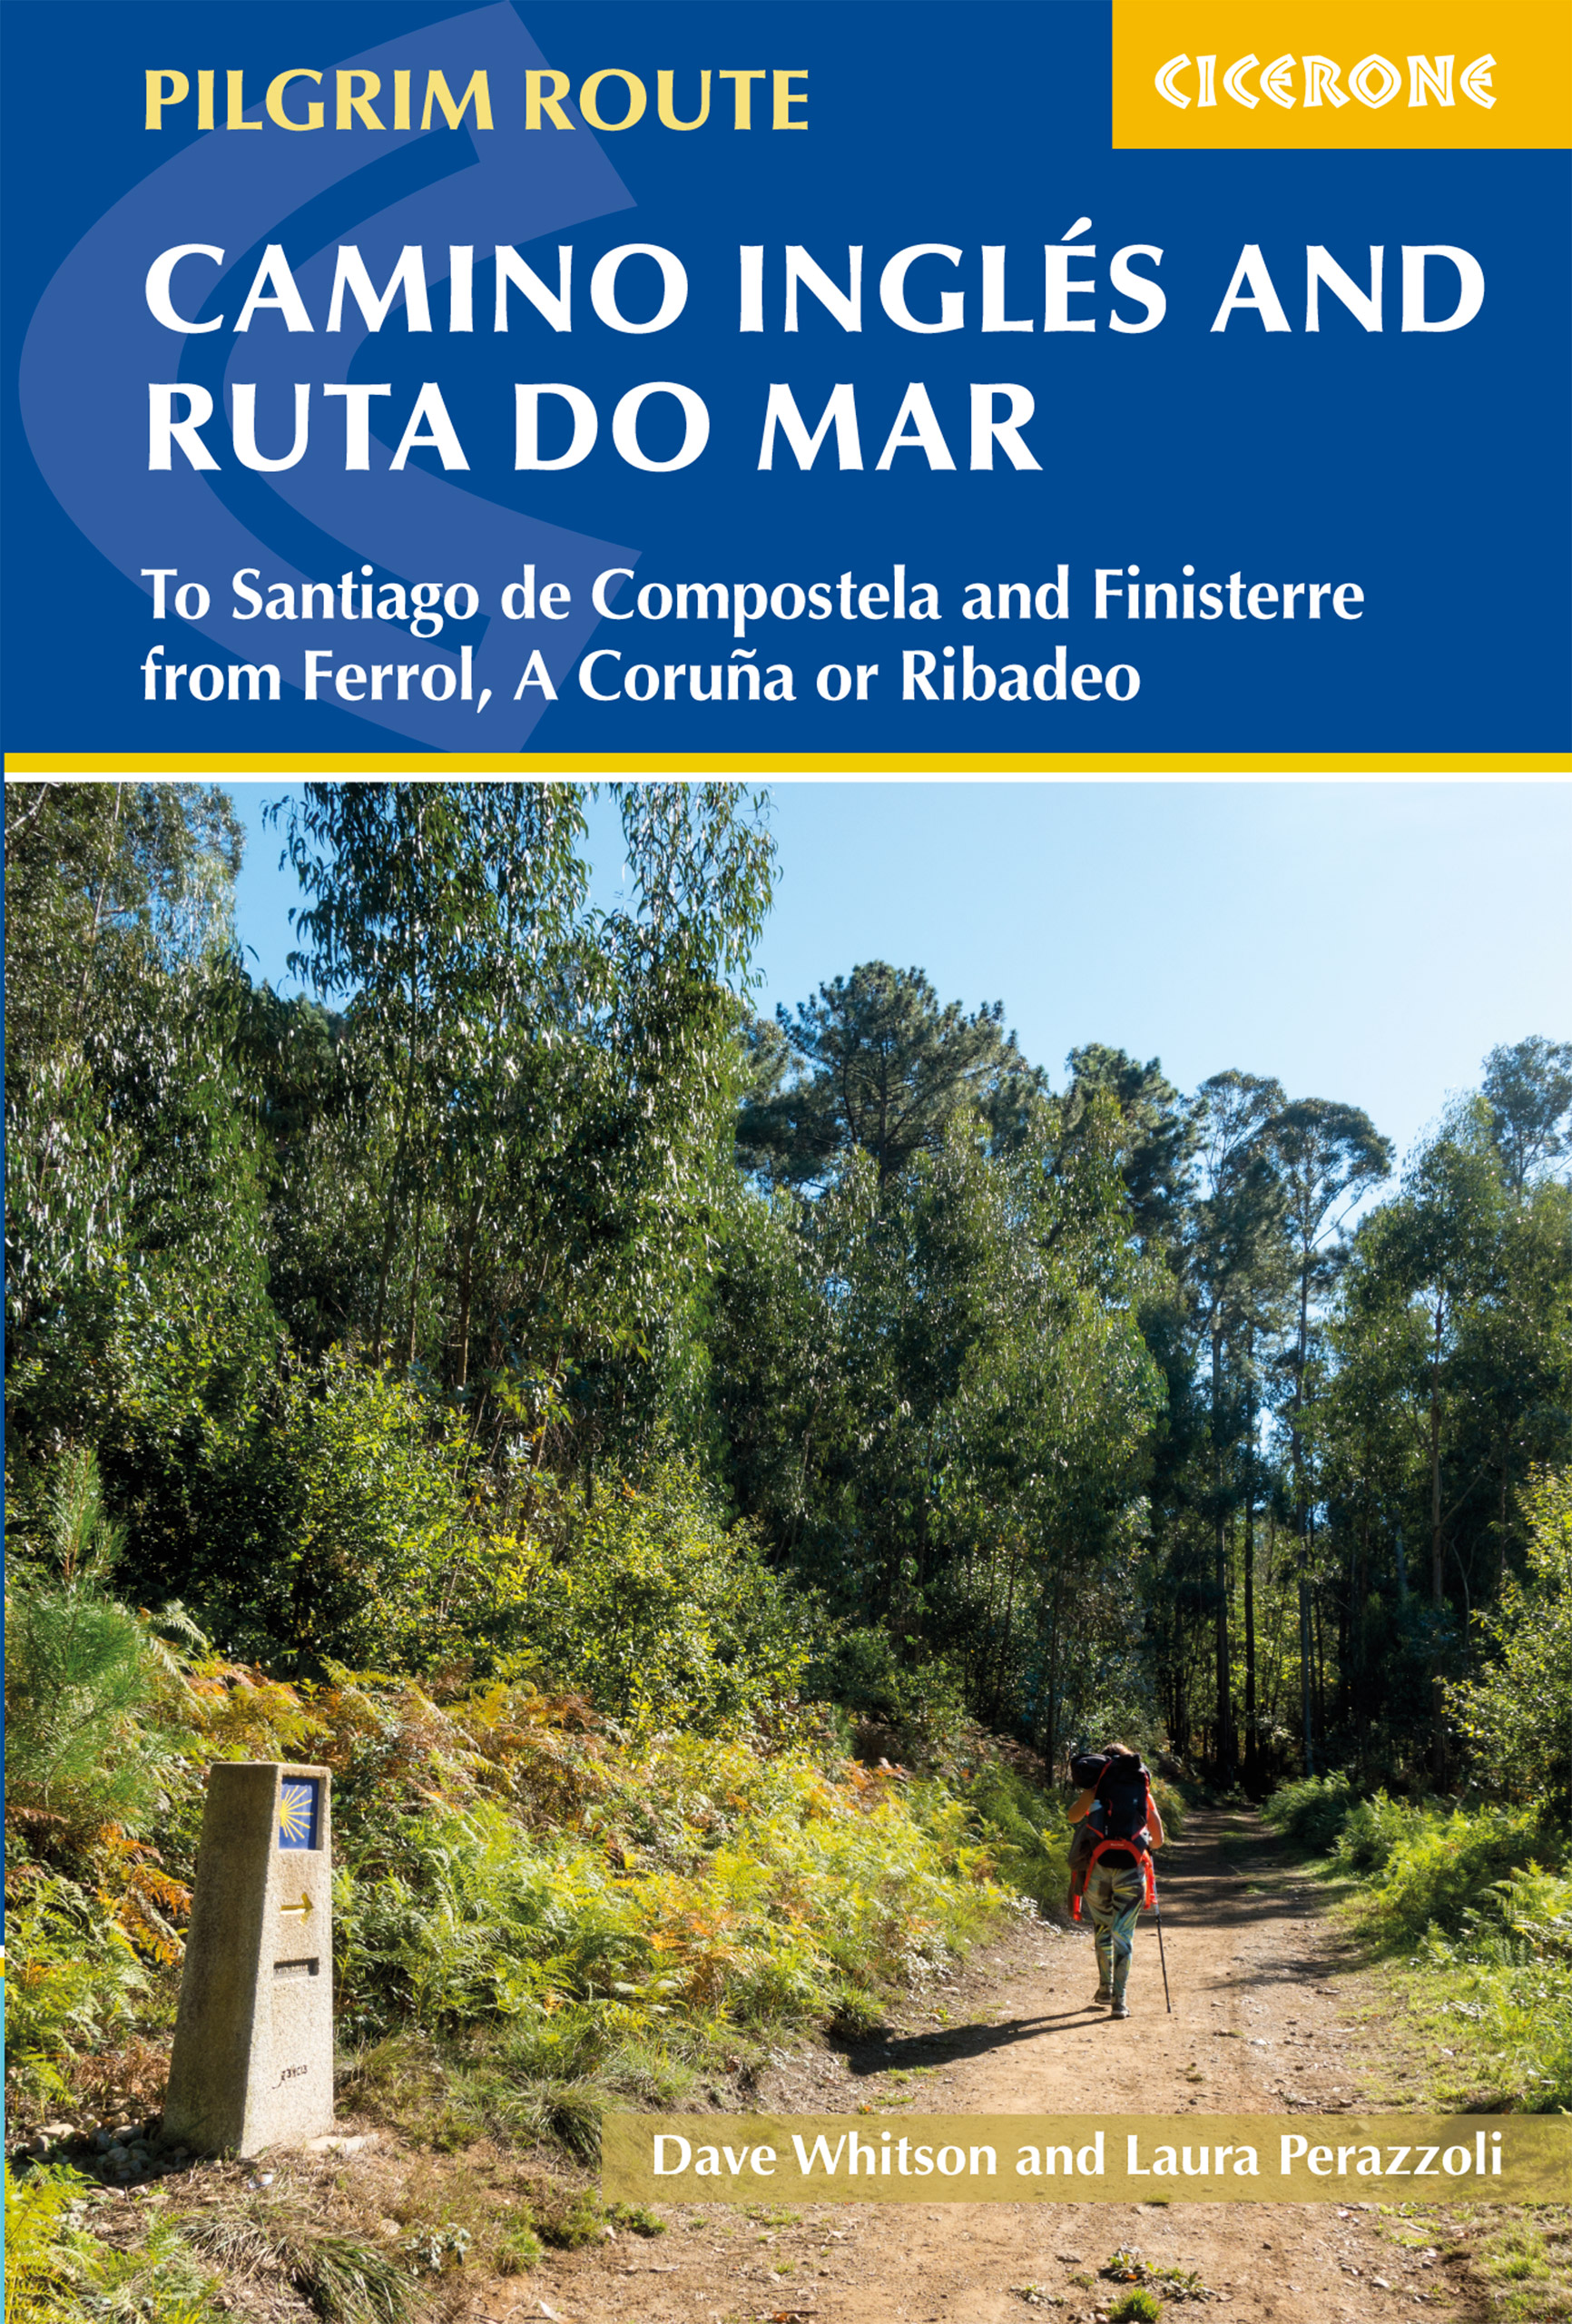 Camino Inglés and Ruta do Mar